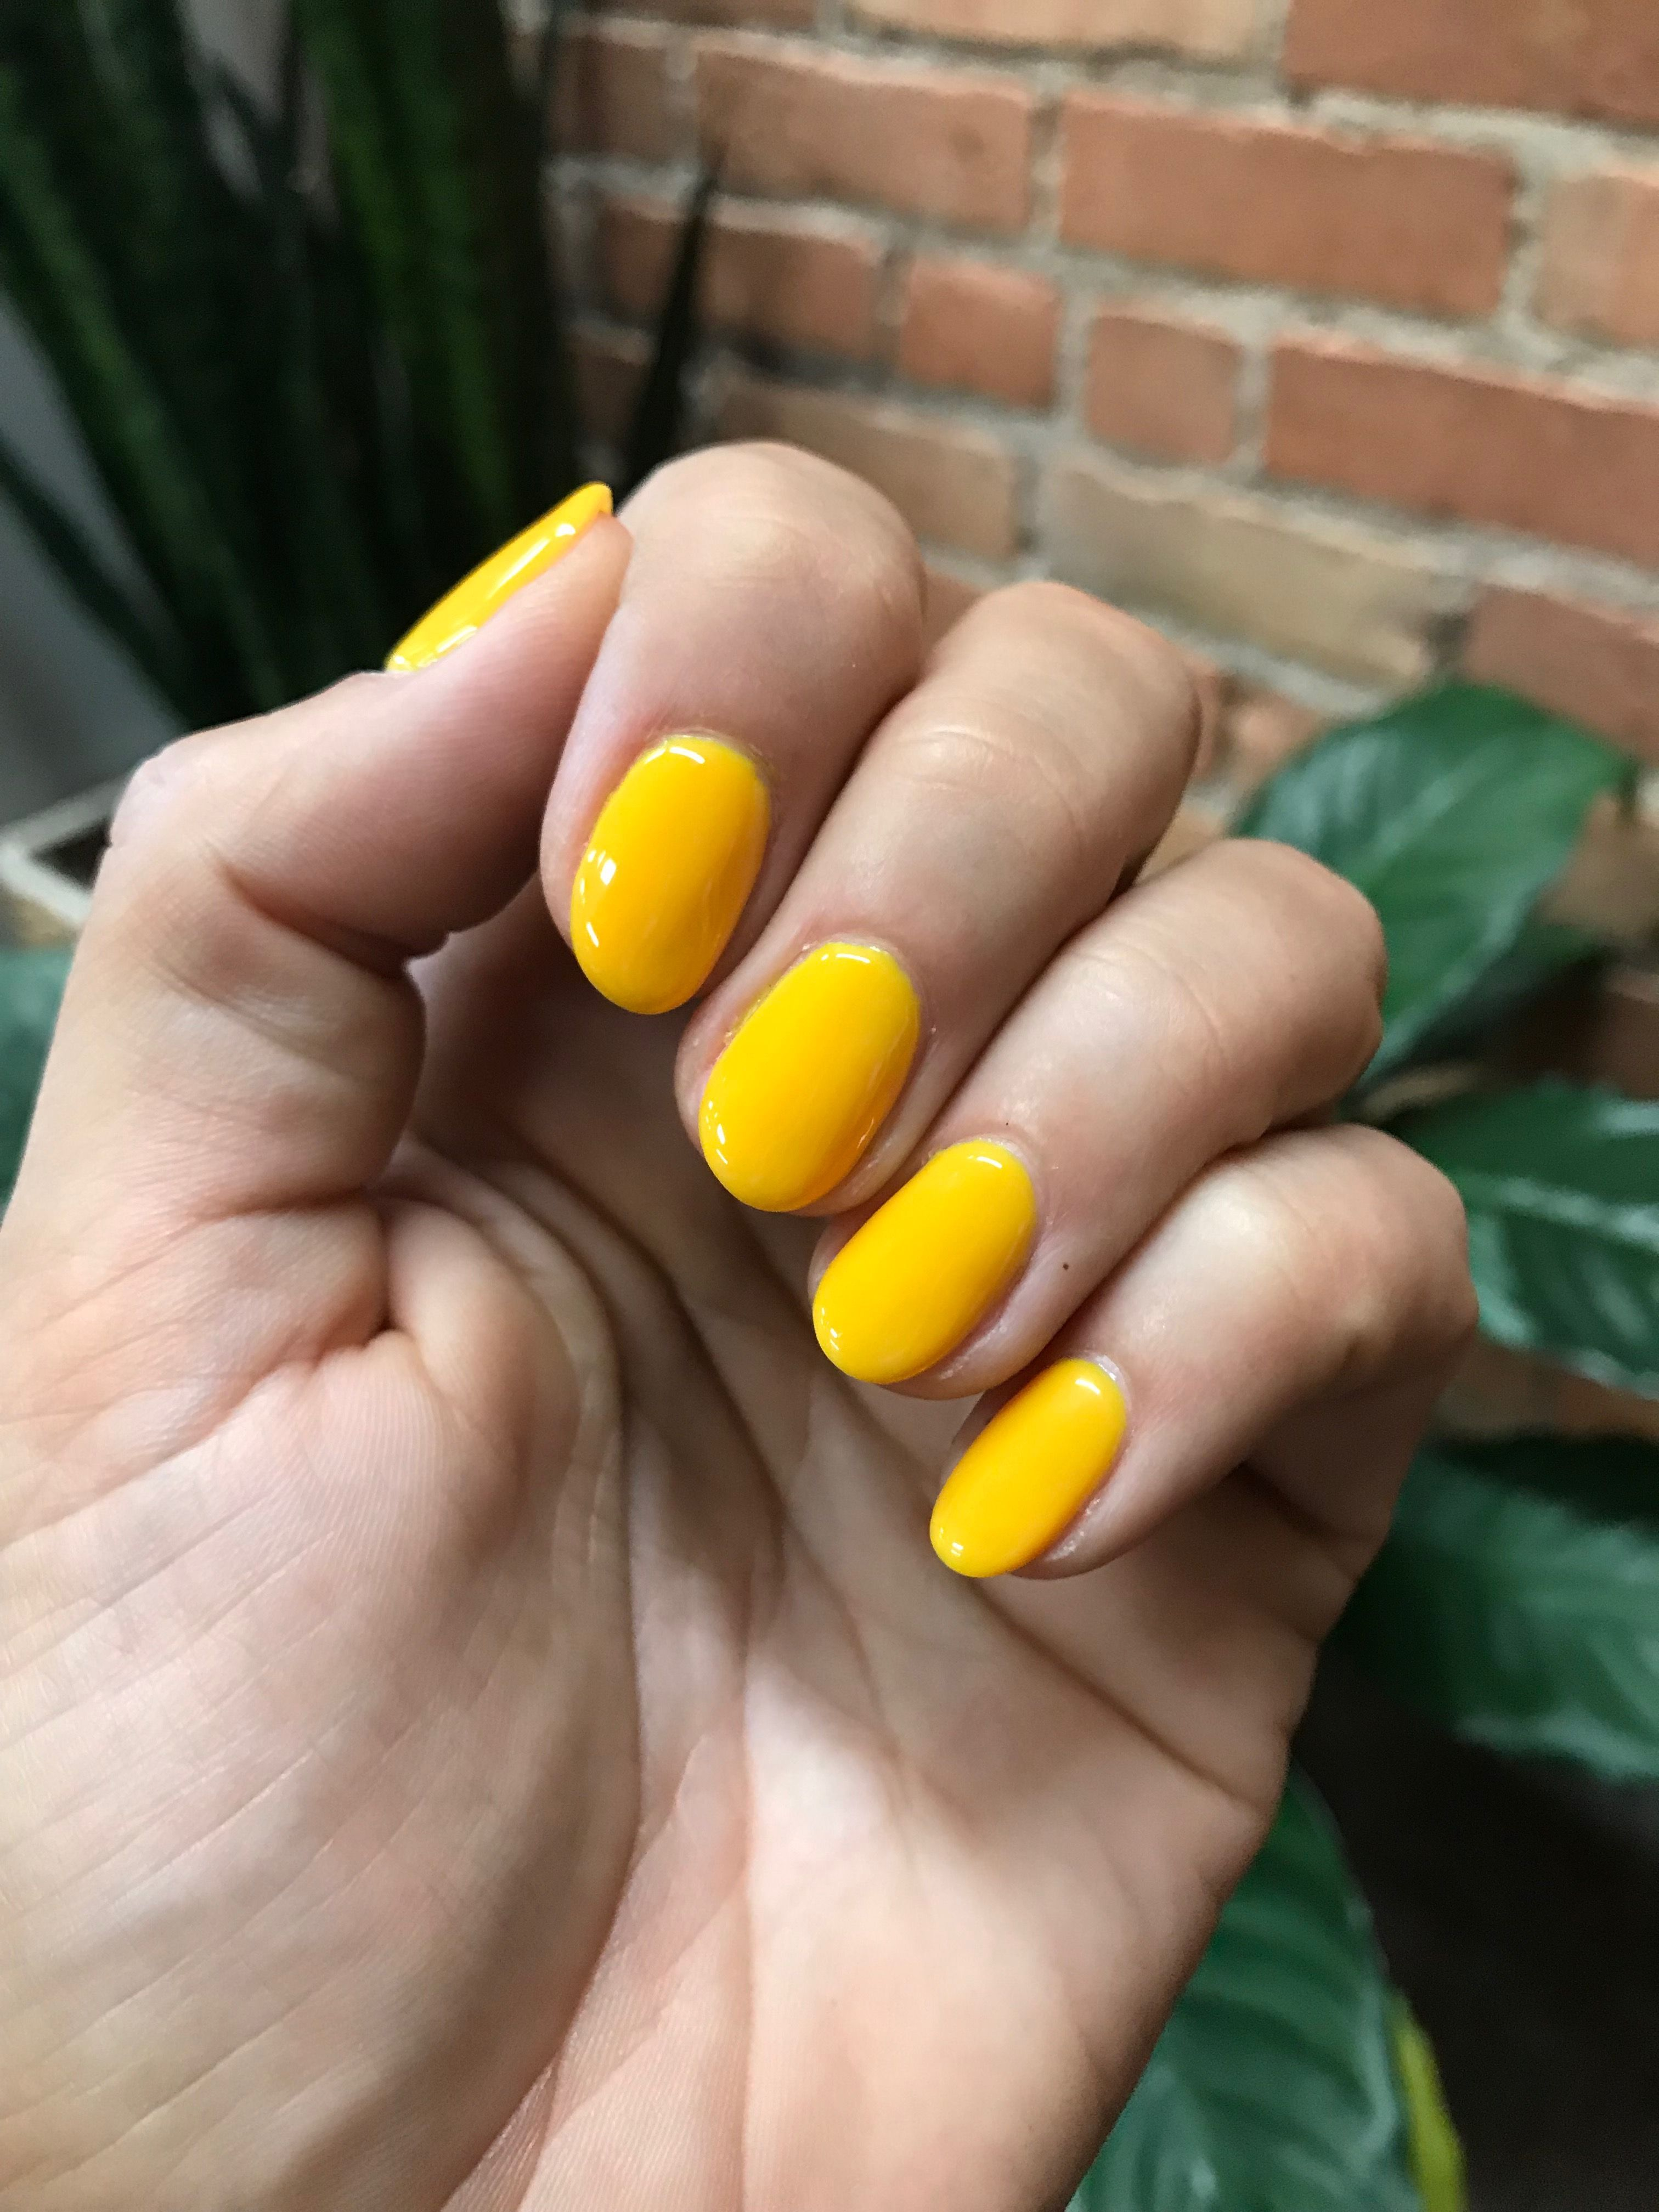 Mustard Yellow Summer Gel Oval Almond Short Nails Acrylicnailsdesigns Oval Acrylic Nails Oval Nails Short Acrylic Nails